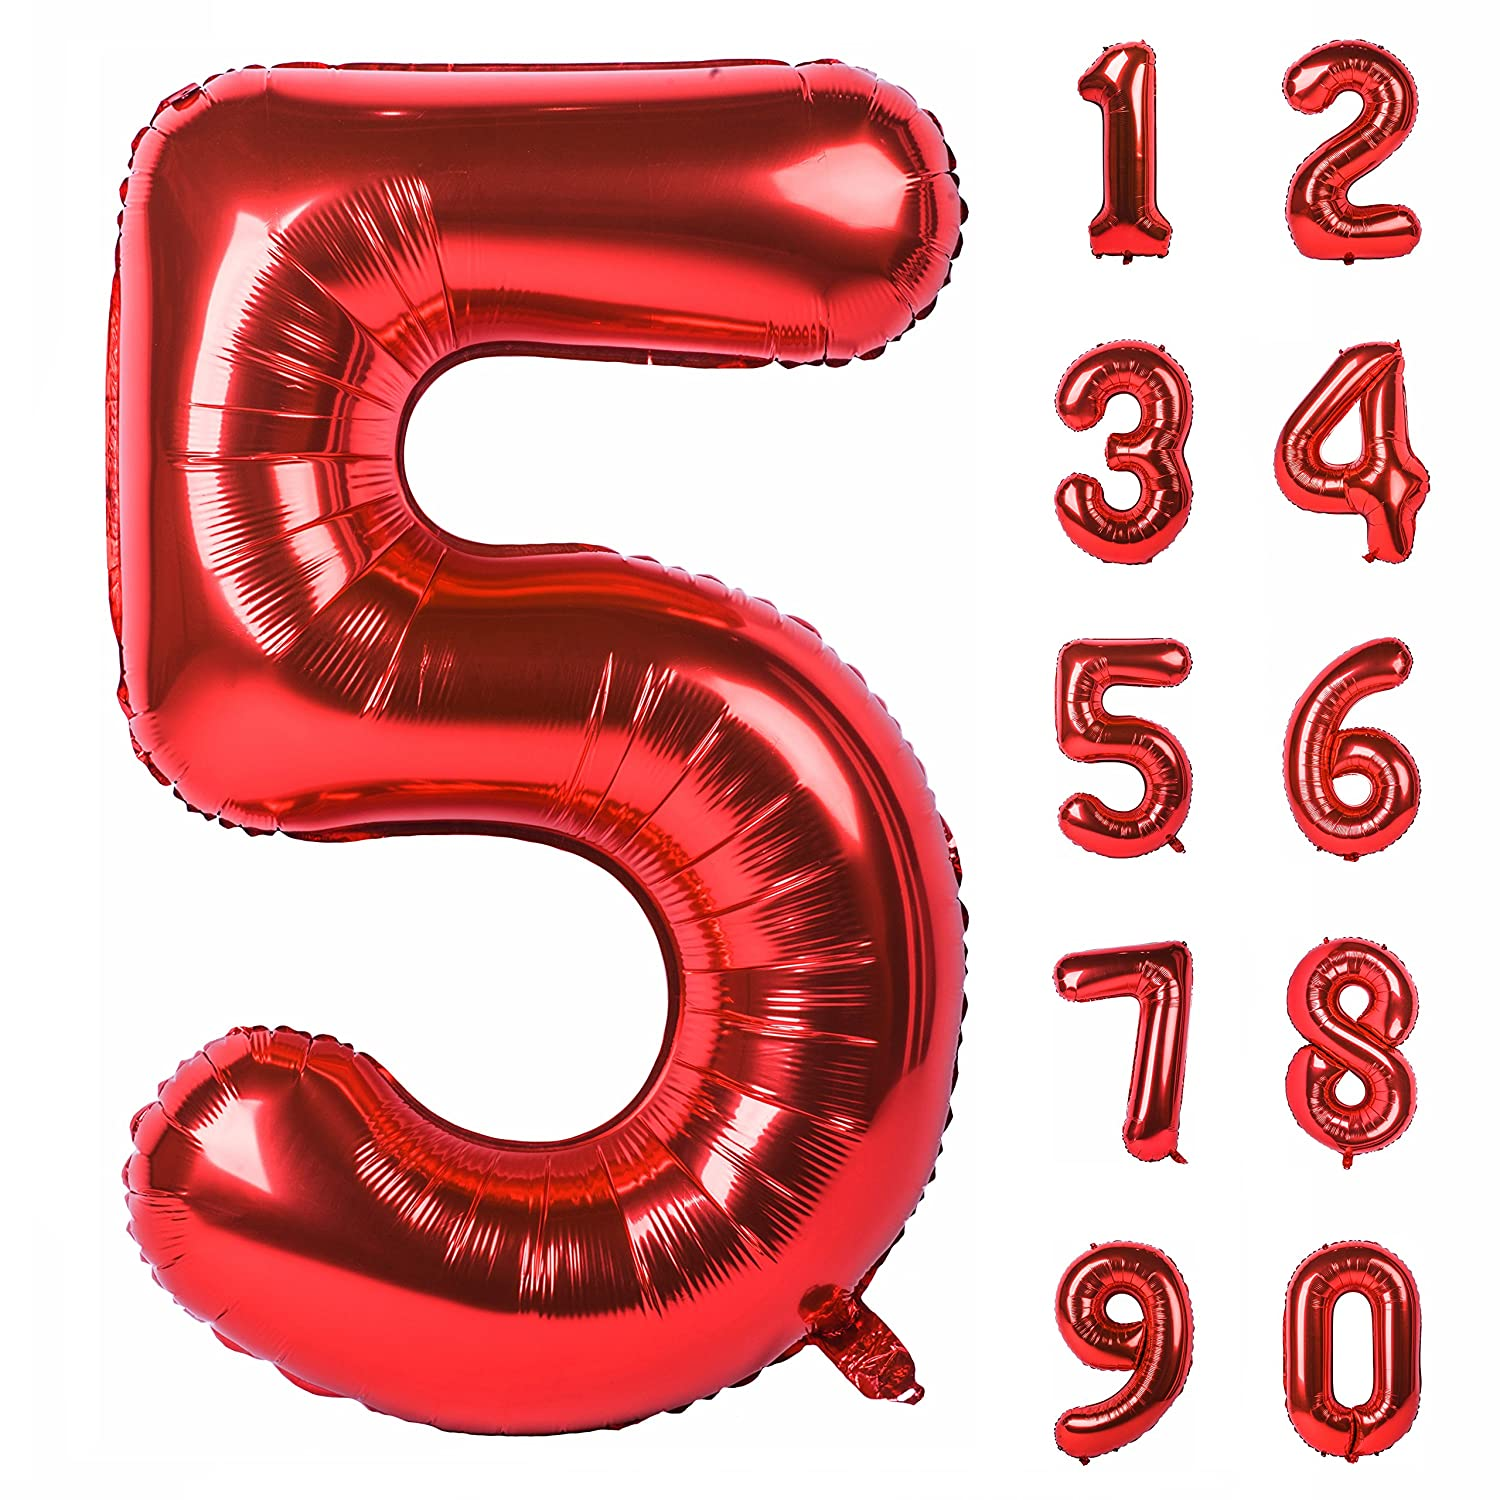 40 Inch Red Large Numbers 0-9 Birthday Party Decorations Helium Foil Mylar Big Number Balloon Digital 1 Angel&tribe